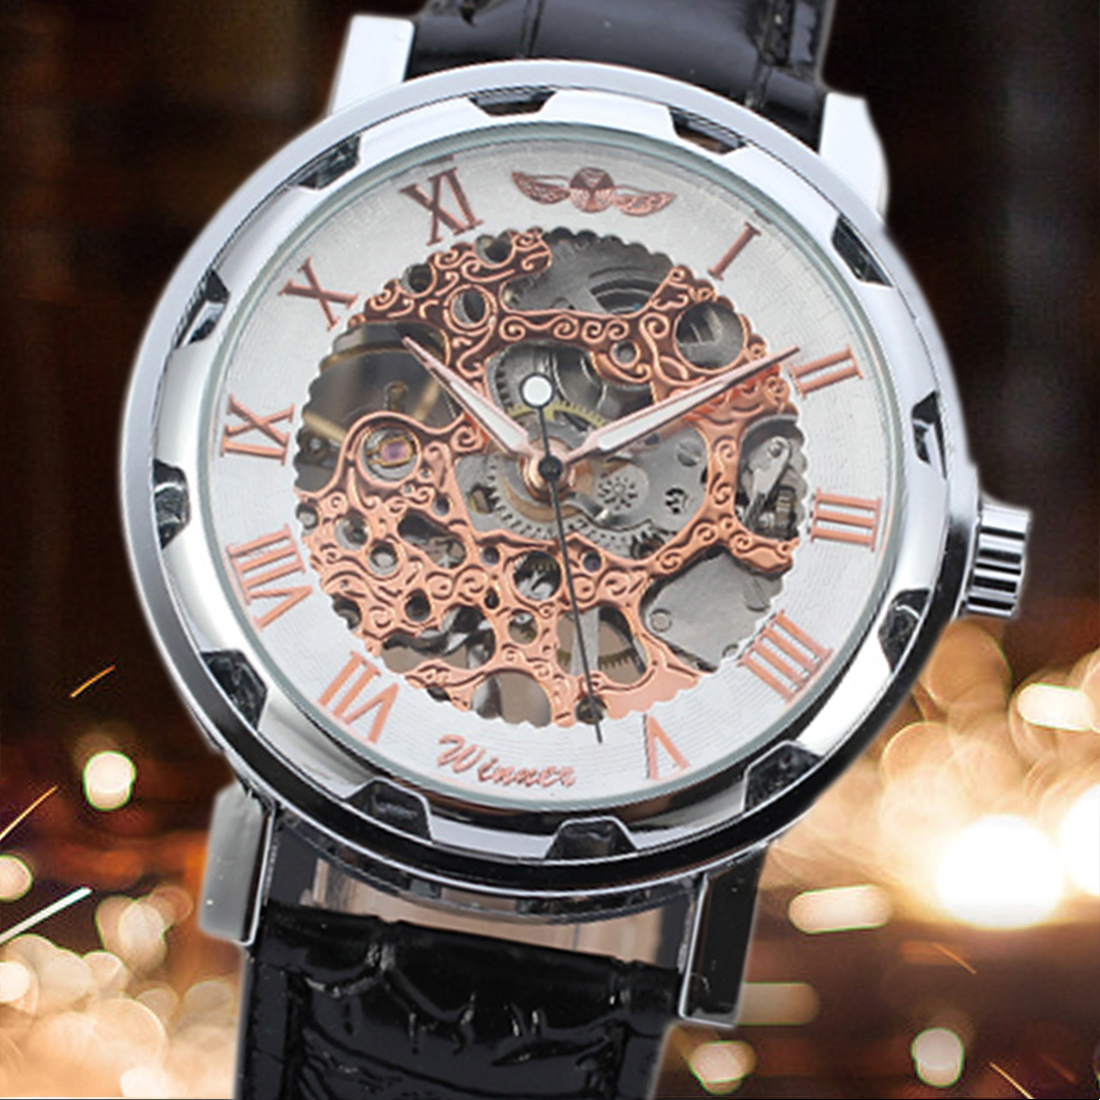 Hot Sale Men Watch Pu Leather Automatic Mechanical Skeleton Watches For Men Fashion Wrist Watch Montre Homme Hombre Horloge 2016 hot new jargar heren horloge luxurious wristwatch watch men tourbillon mechanical watches men pu leather watch